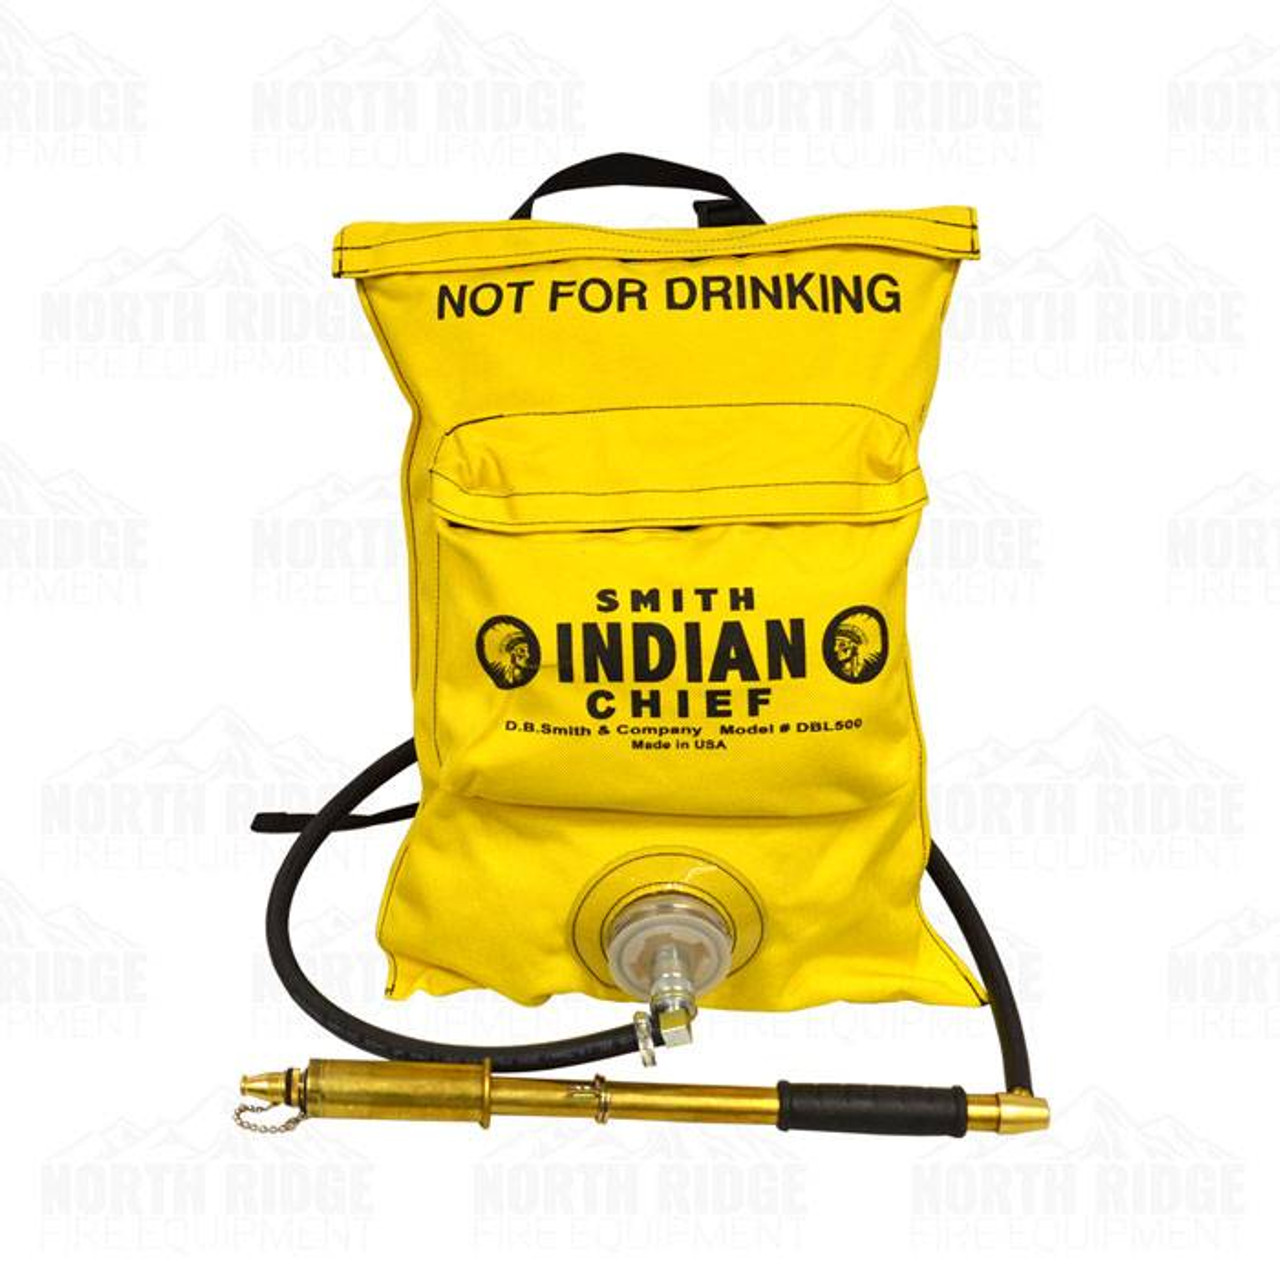 Indian DBL500 Dual Collapsible Fire Pump Bag